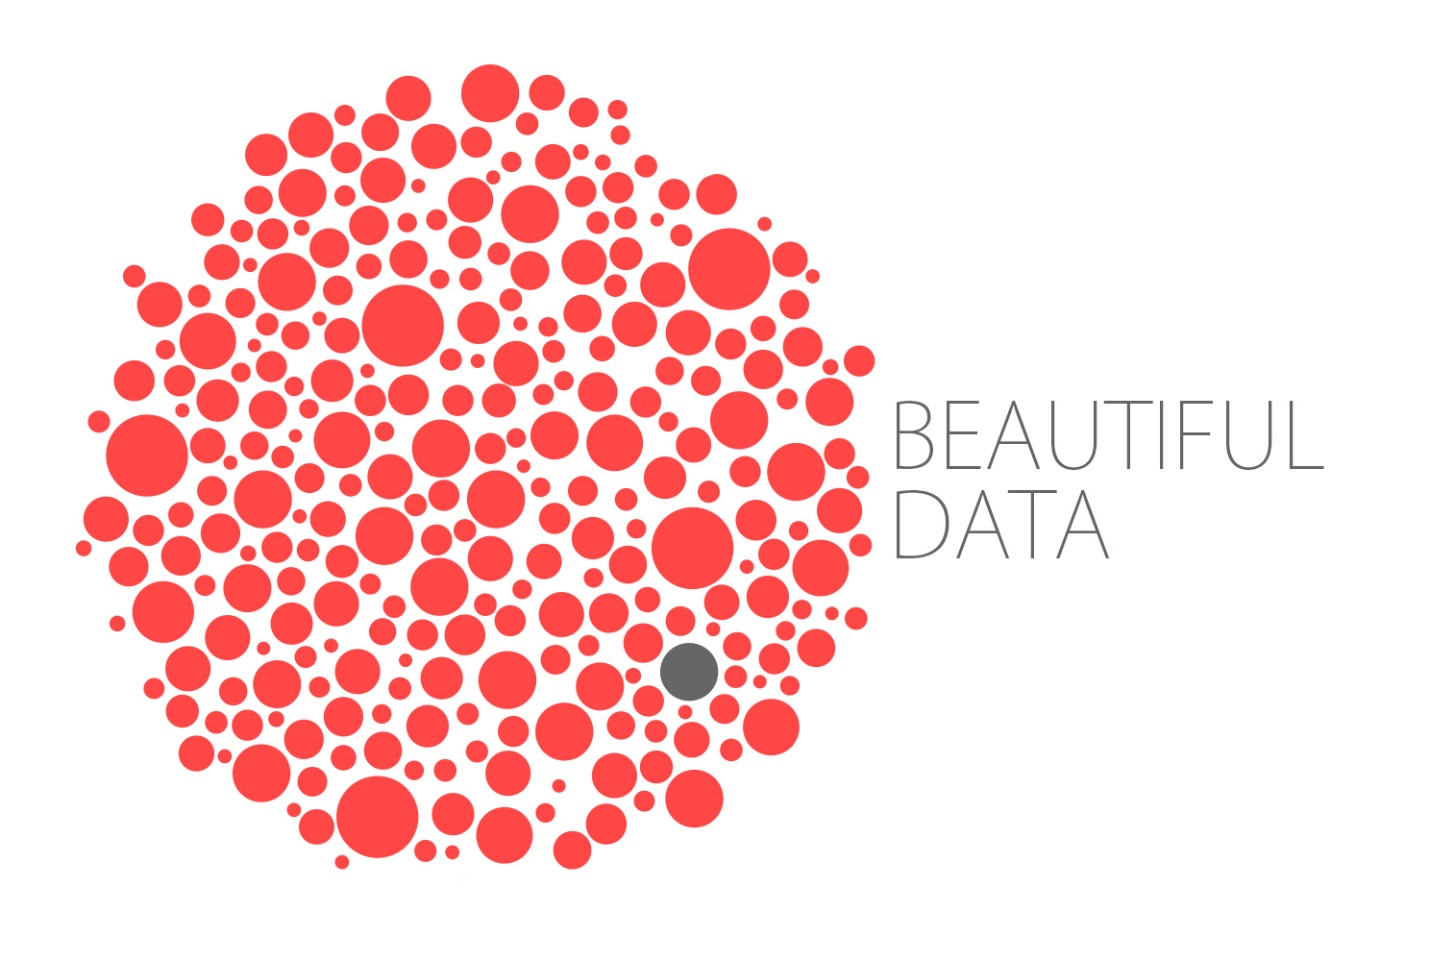 Beautiful Data graphic created by Harvard University's metaLAB